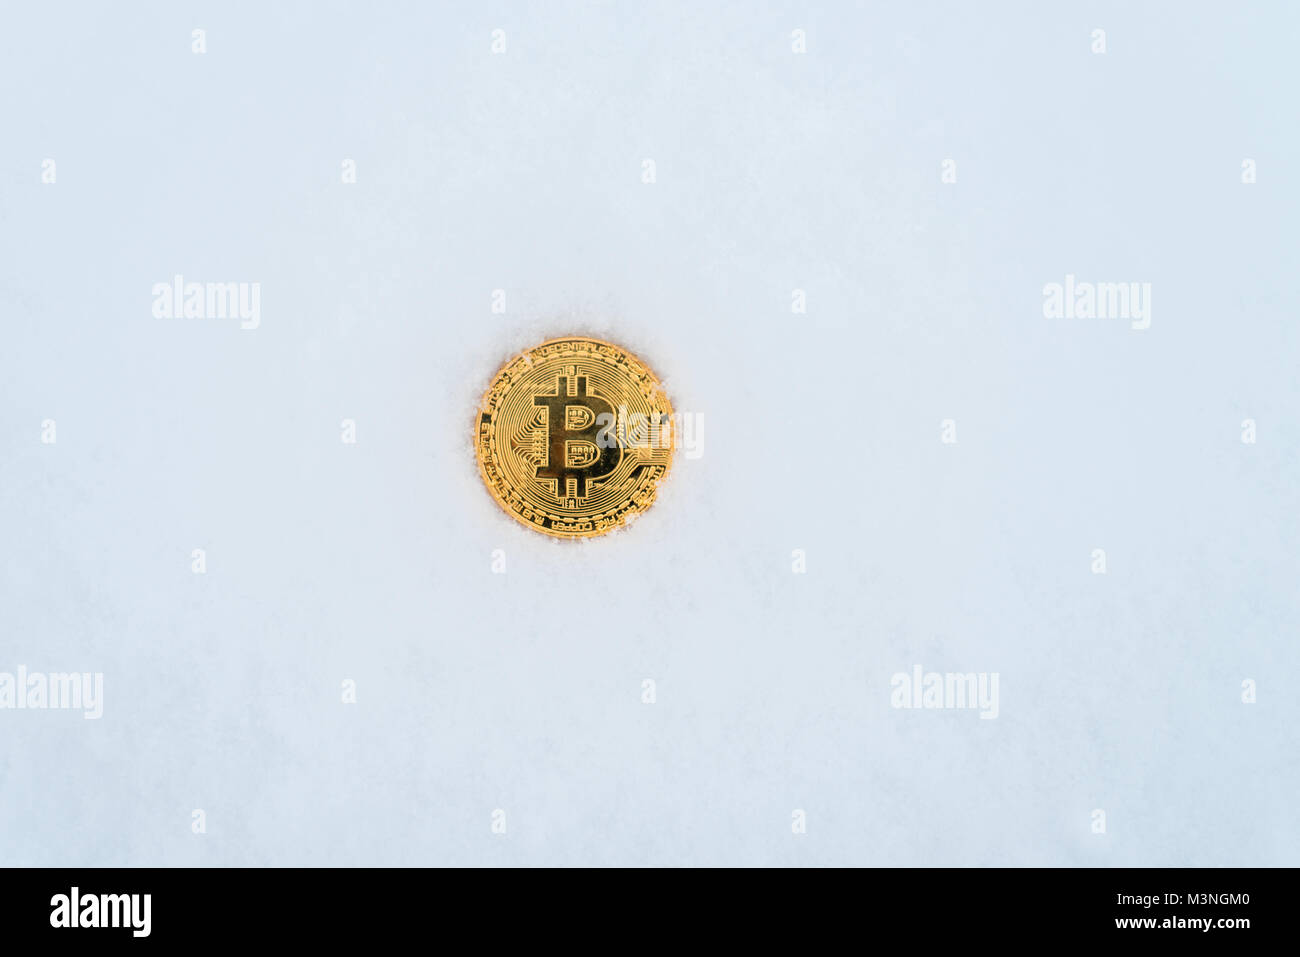 The lost coin of crypto-currency in winter in the snow. Gold bitcoin in the snow alone. - Stock Image